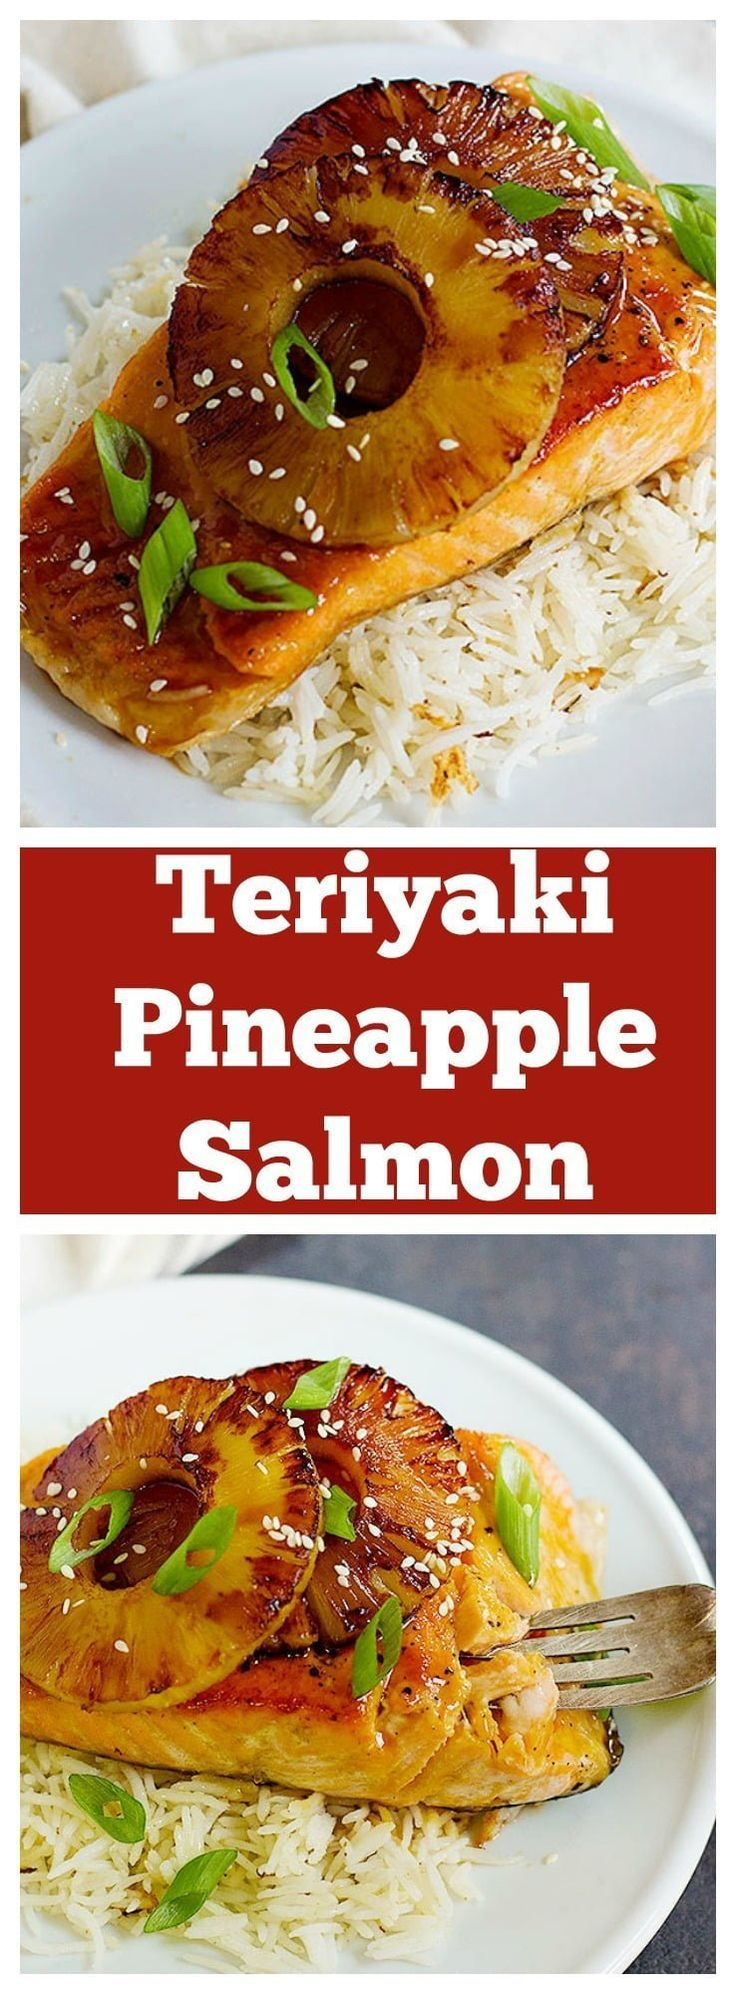 Geben Sie Ihrem gewohnten Meeresfrüchte-Rezept eine tolle Note mit diesem Teriyaki-Ananas-Lachs ...   - salmon recipes #salmon marinade #baked salmon #grilled salmon #searedsalmonrecipes